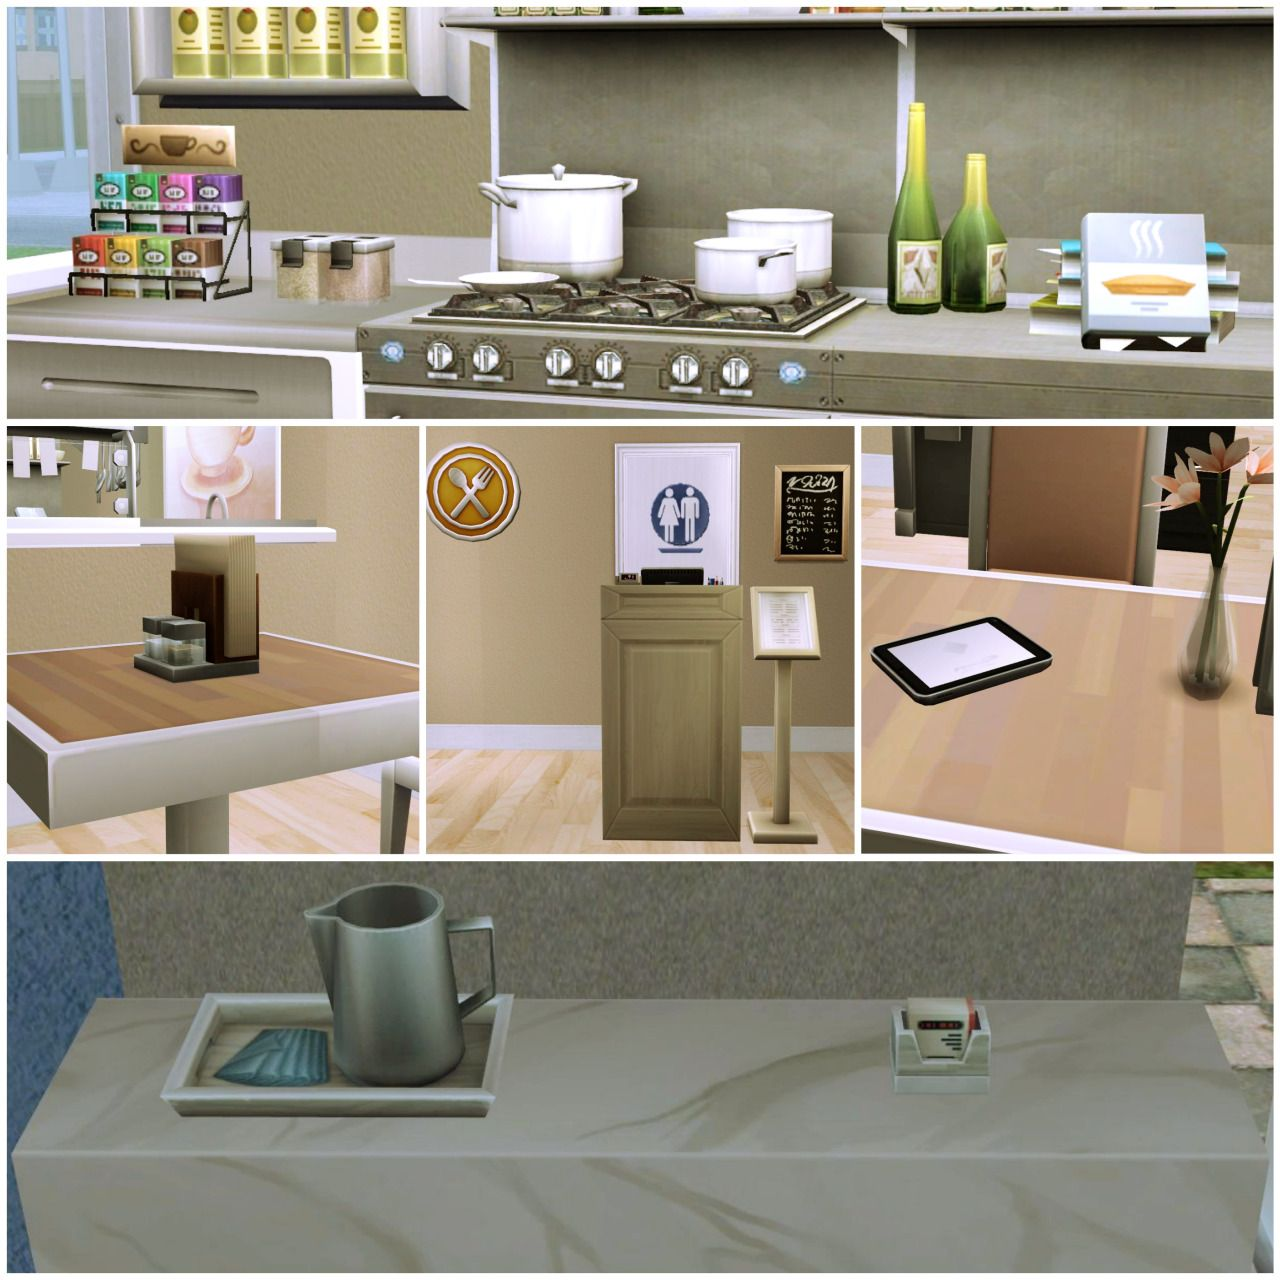 Sims4 - Sims 2 Dine Out Deco Business Card Holder Cookbooks Tea ...